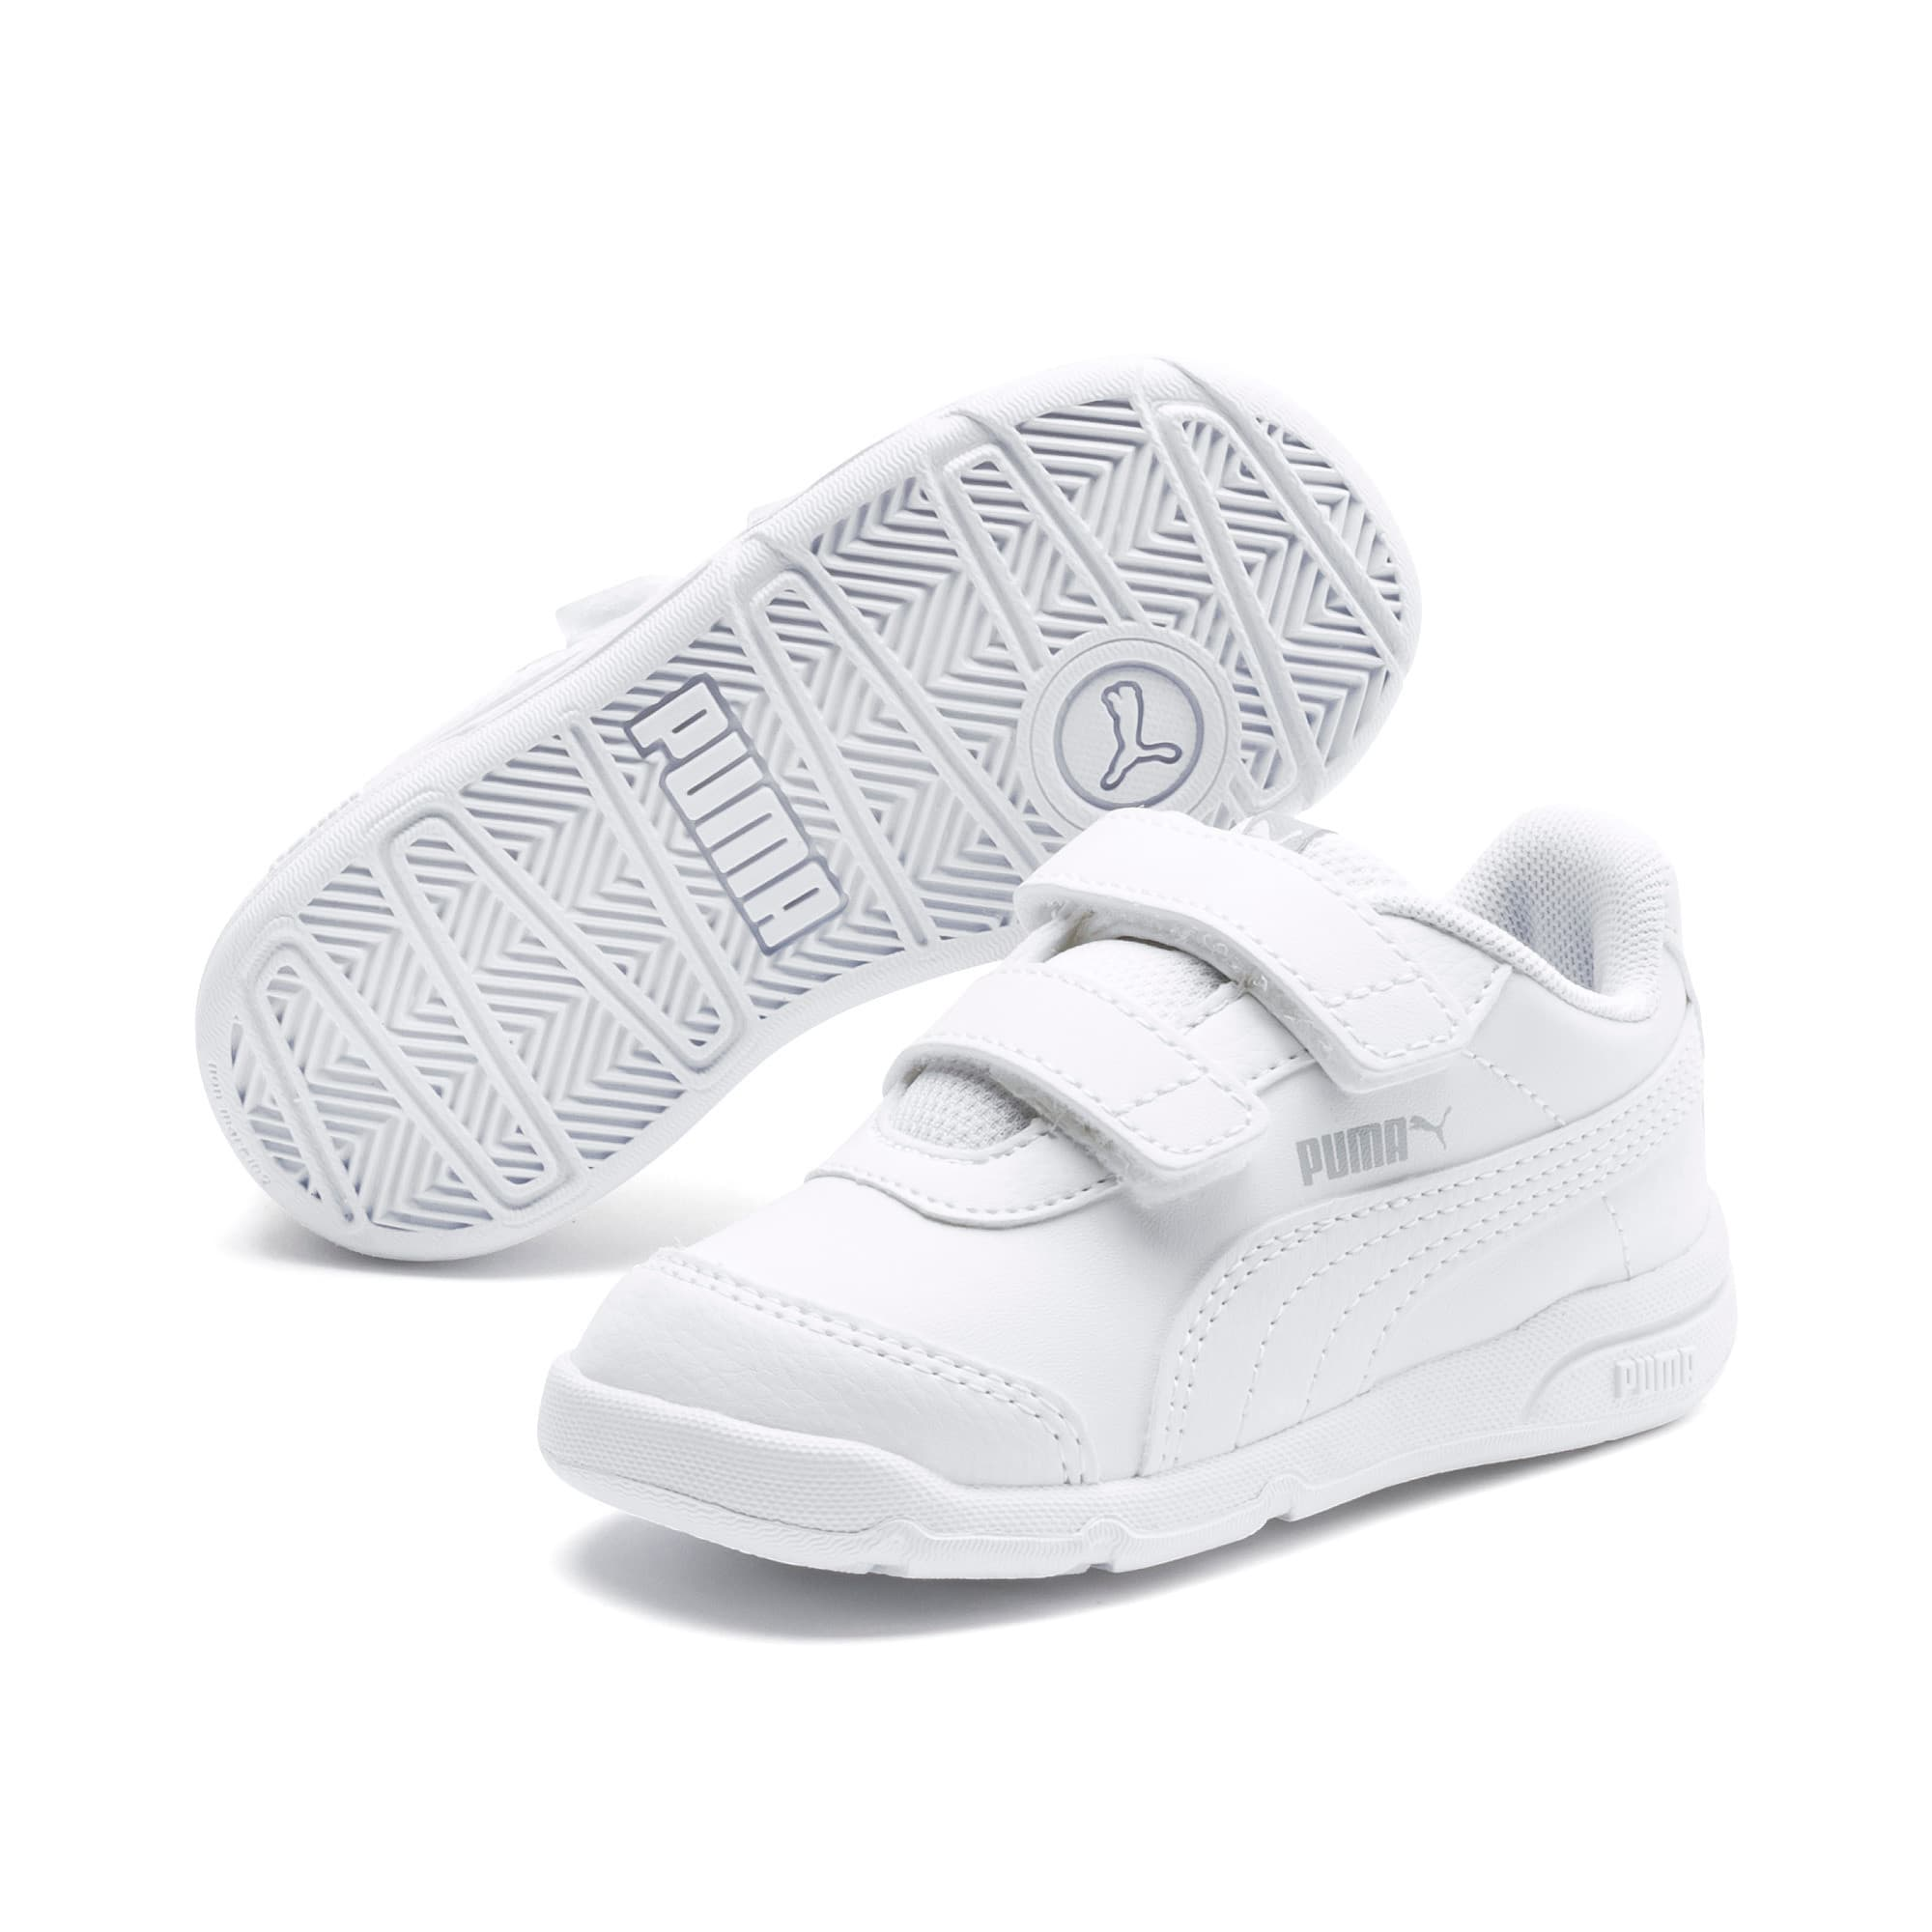 Thumbnail 2 of Stepfleex 2 SL VE V Babies Sneaker, Puma White-Puma White, medium